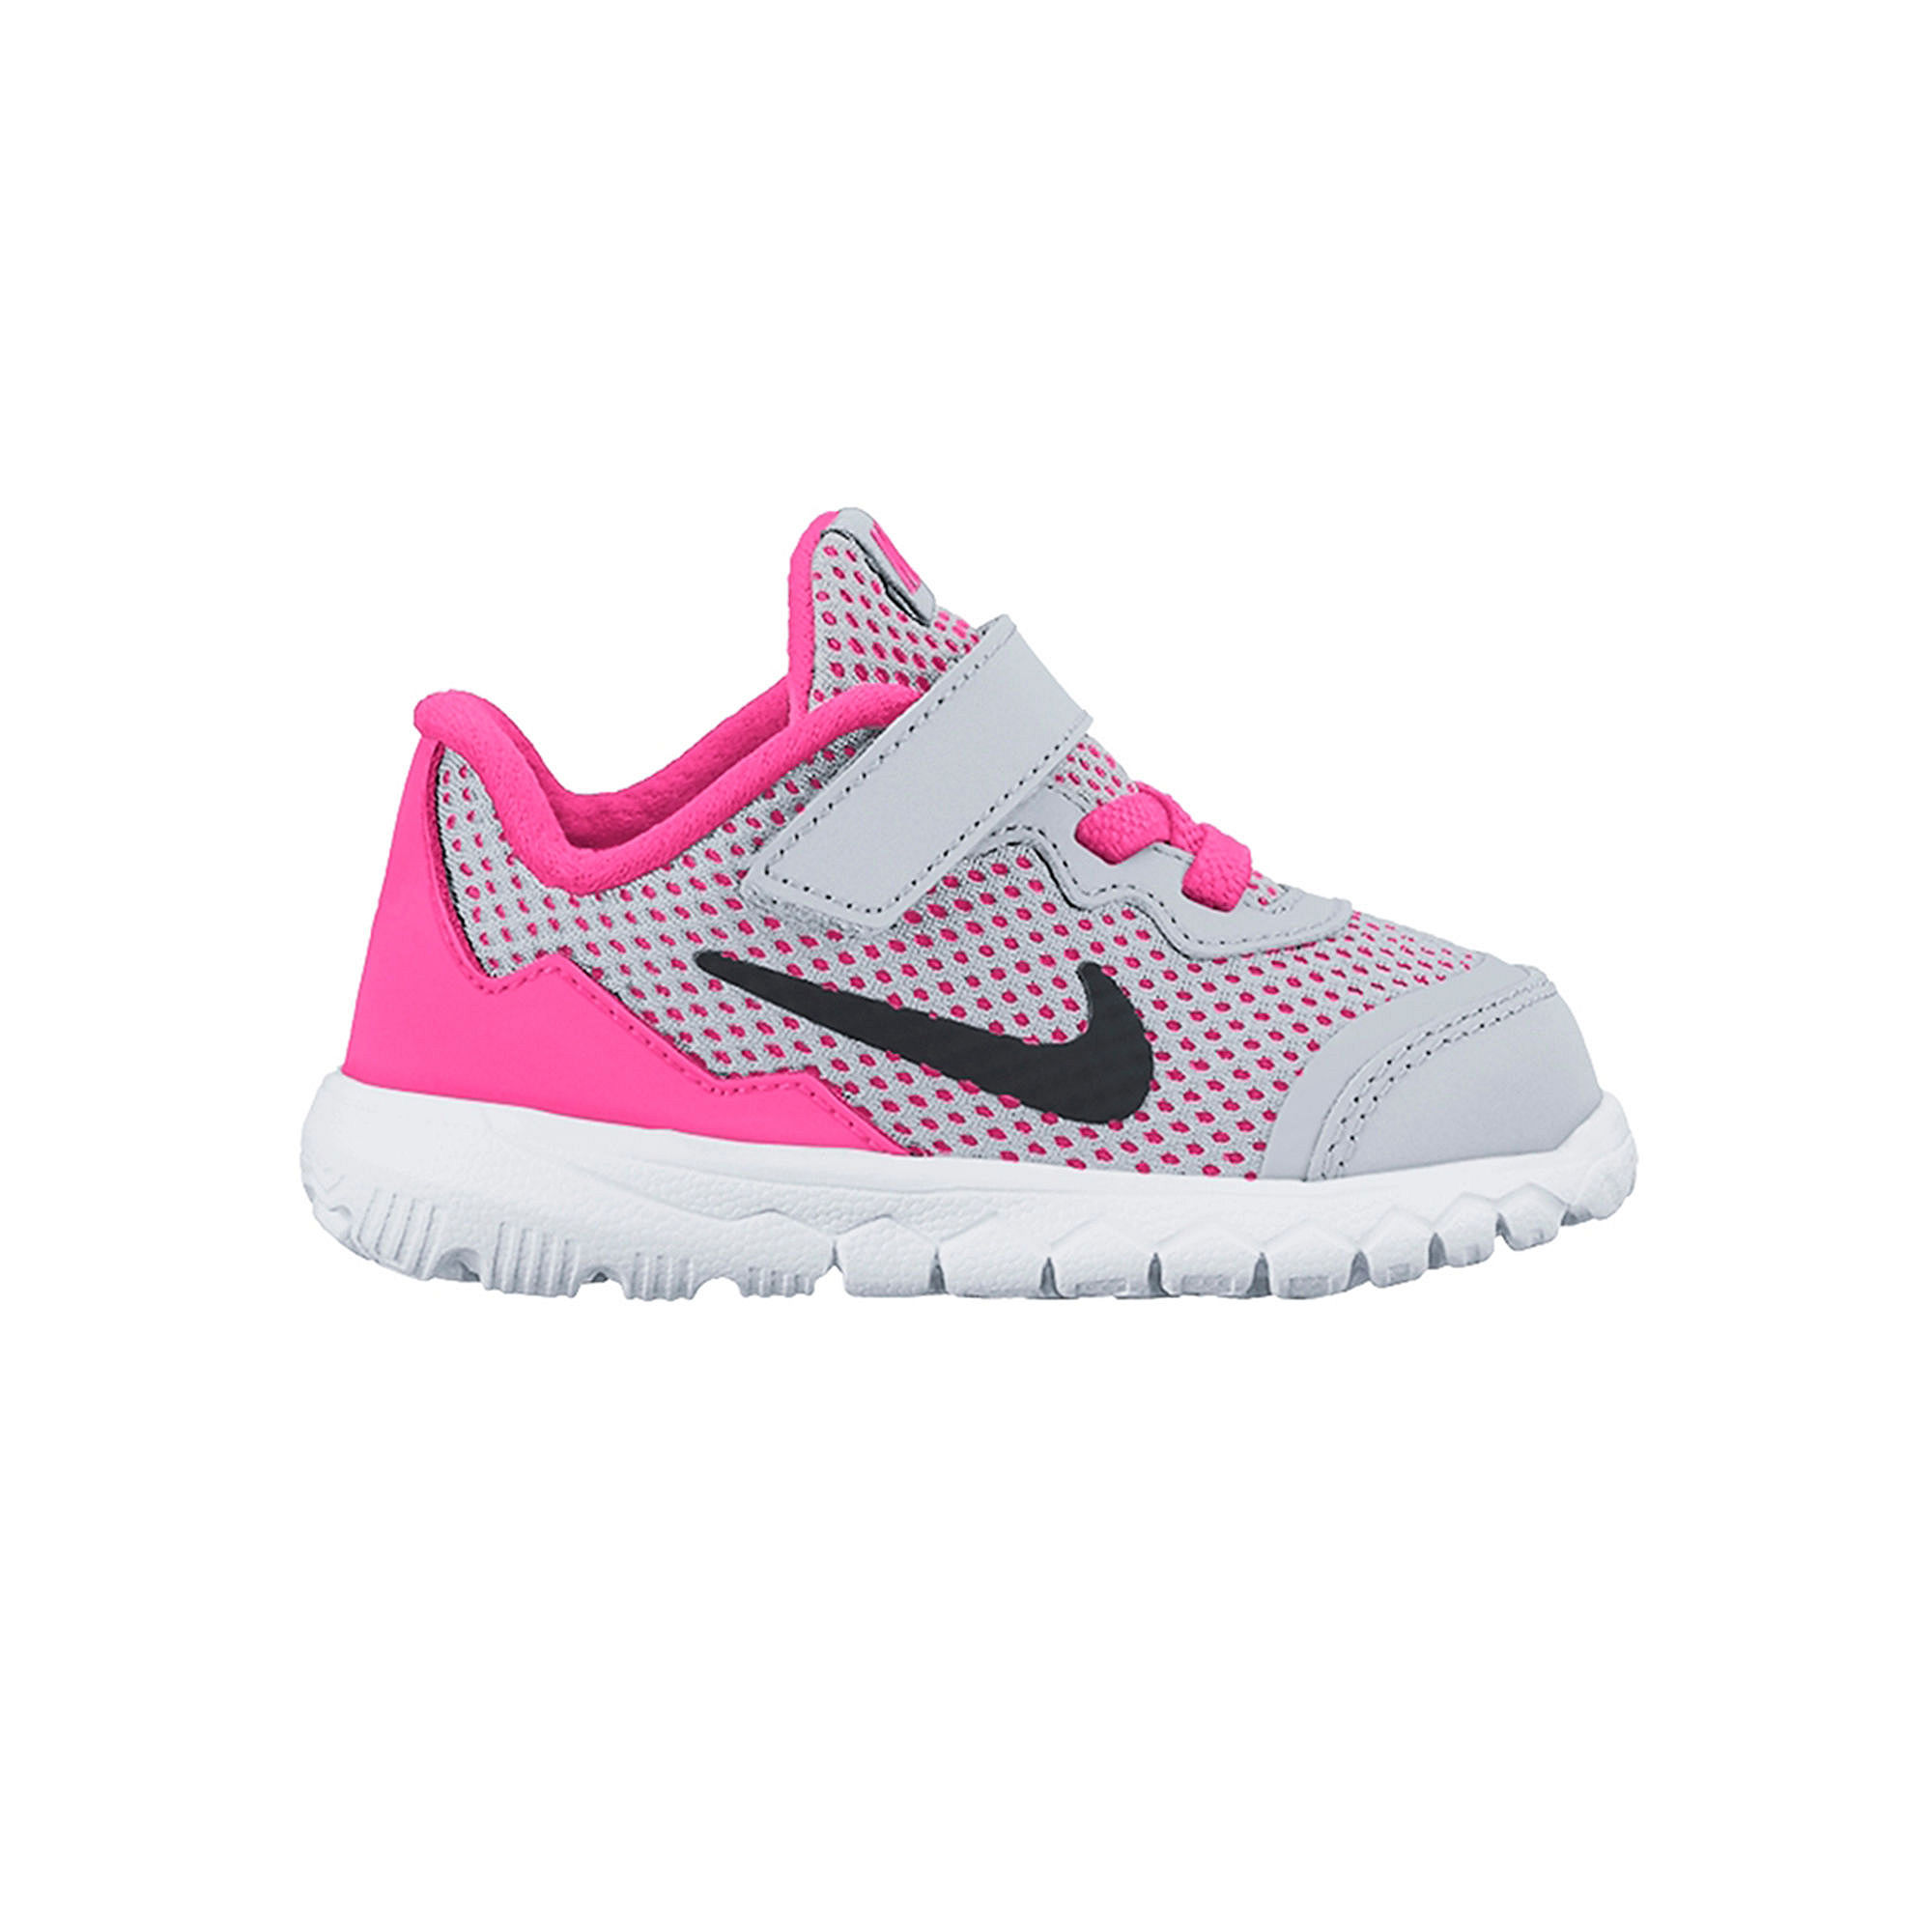 b1d1f8fe10ad UPC 888410289136. ZOOM. UPC 888410289136 has following Product Name  Variations  Toddler Girl s Nike  Flex Experience 4  ...